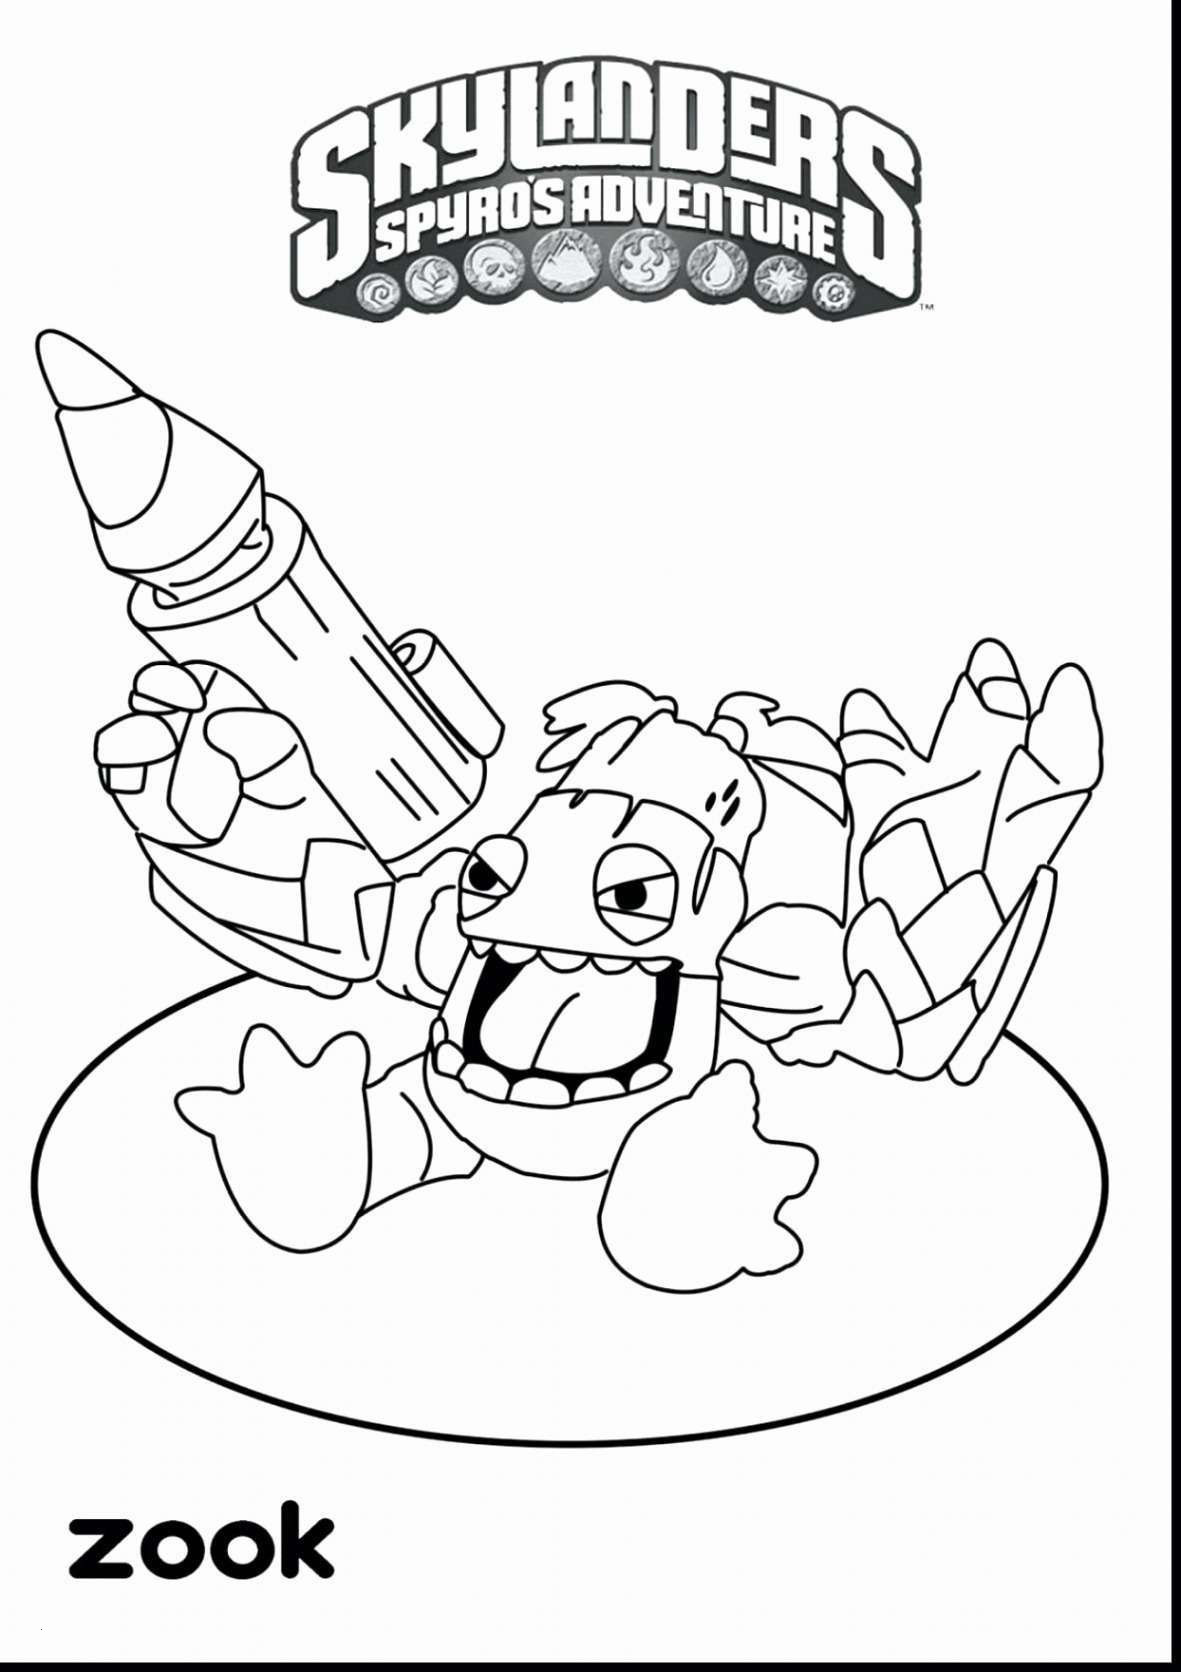 Ausmalbilder U Boot Inspirierend 24 Coloring Pages Barbie Collection Coloring Sheets Fotos